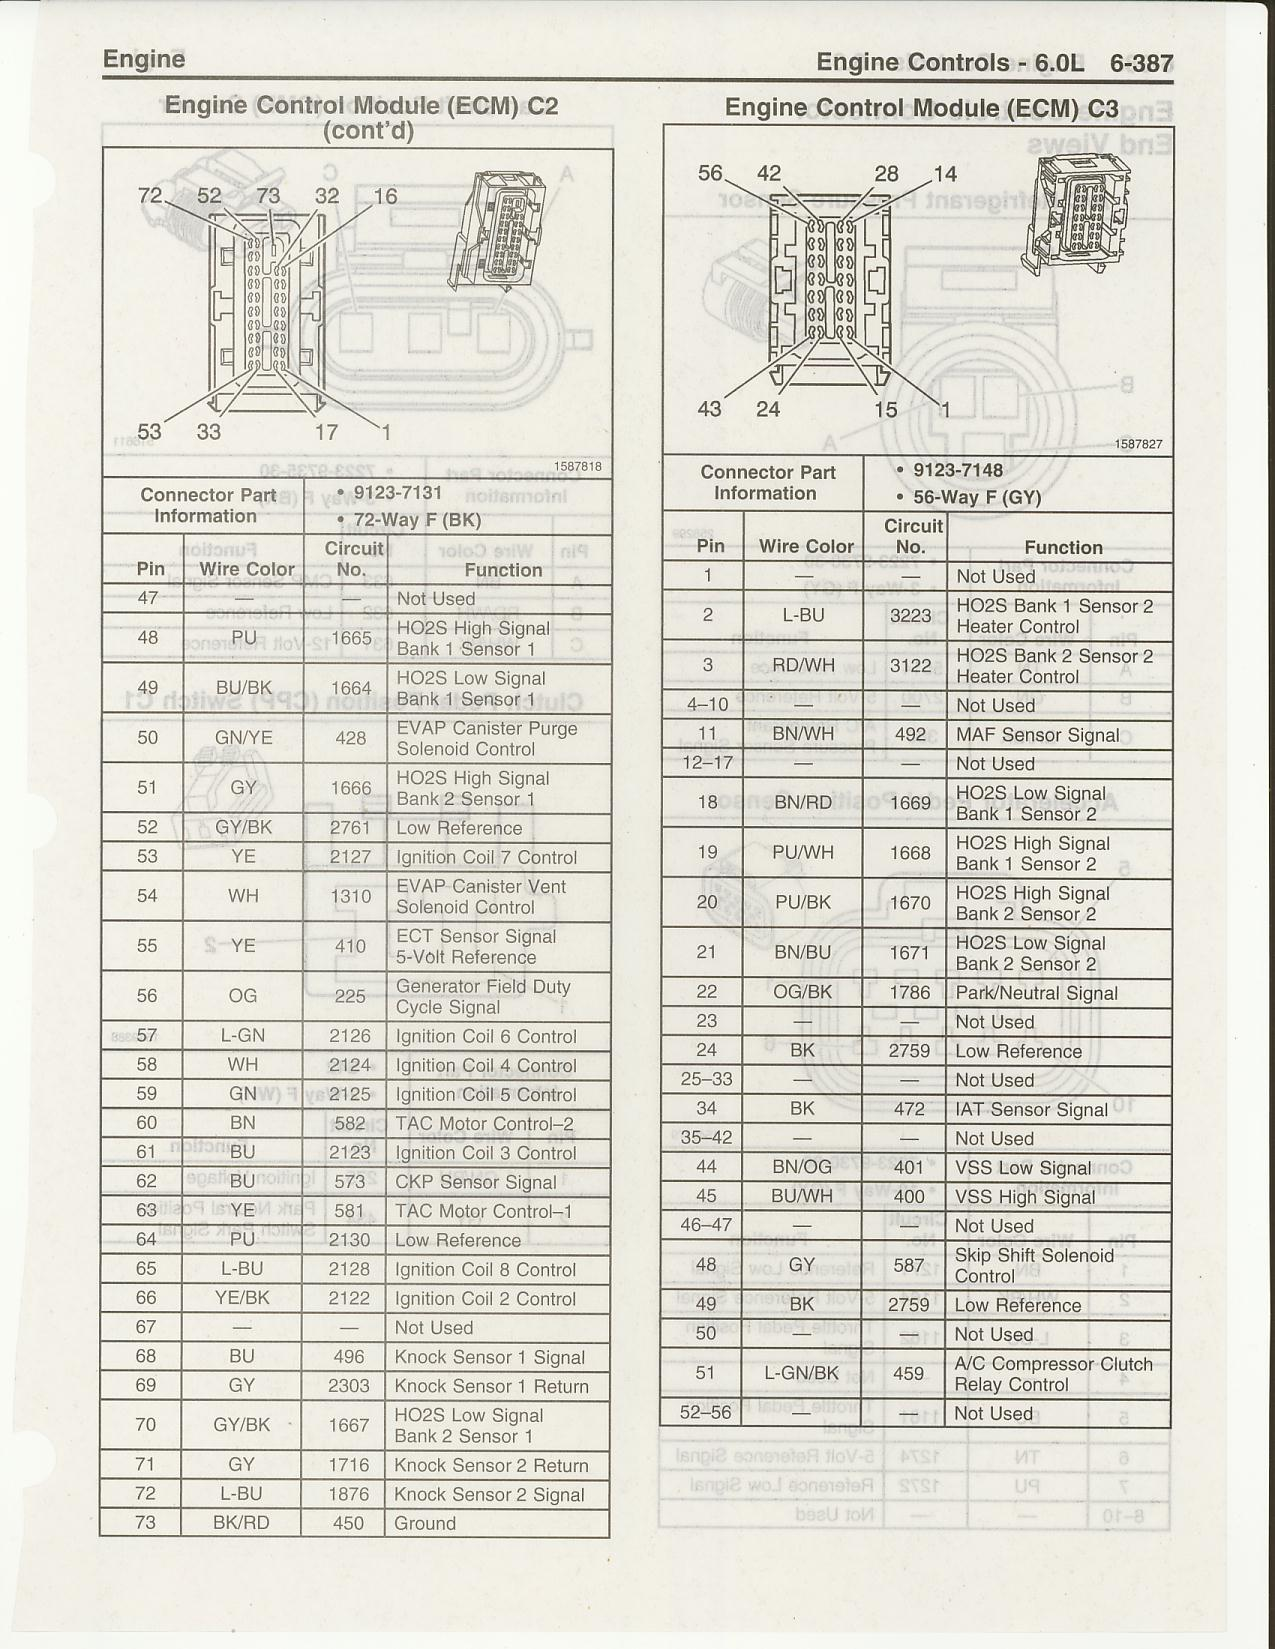 enginecontrols09 e67 wiring diagram smart car diagrams \u2022 wiring diagrams j squared co gm ls3 crate engine wiring diagram at bayanpartner.co